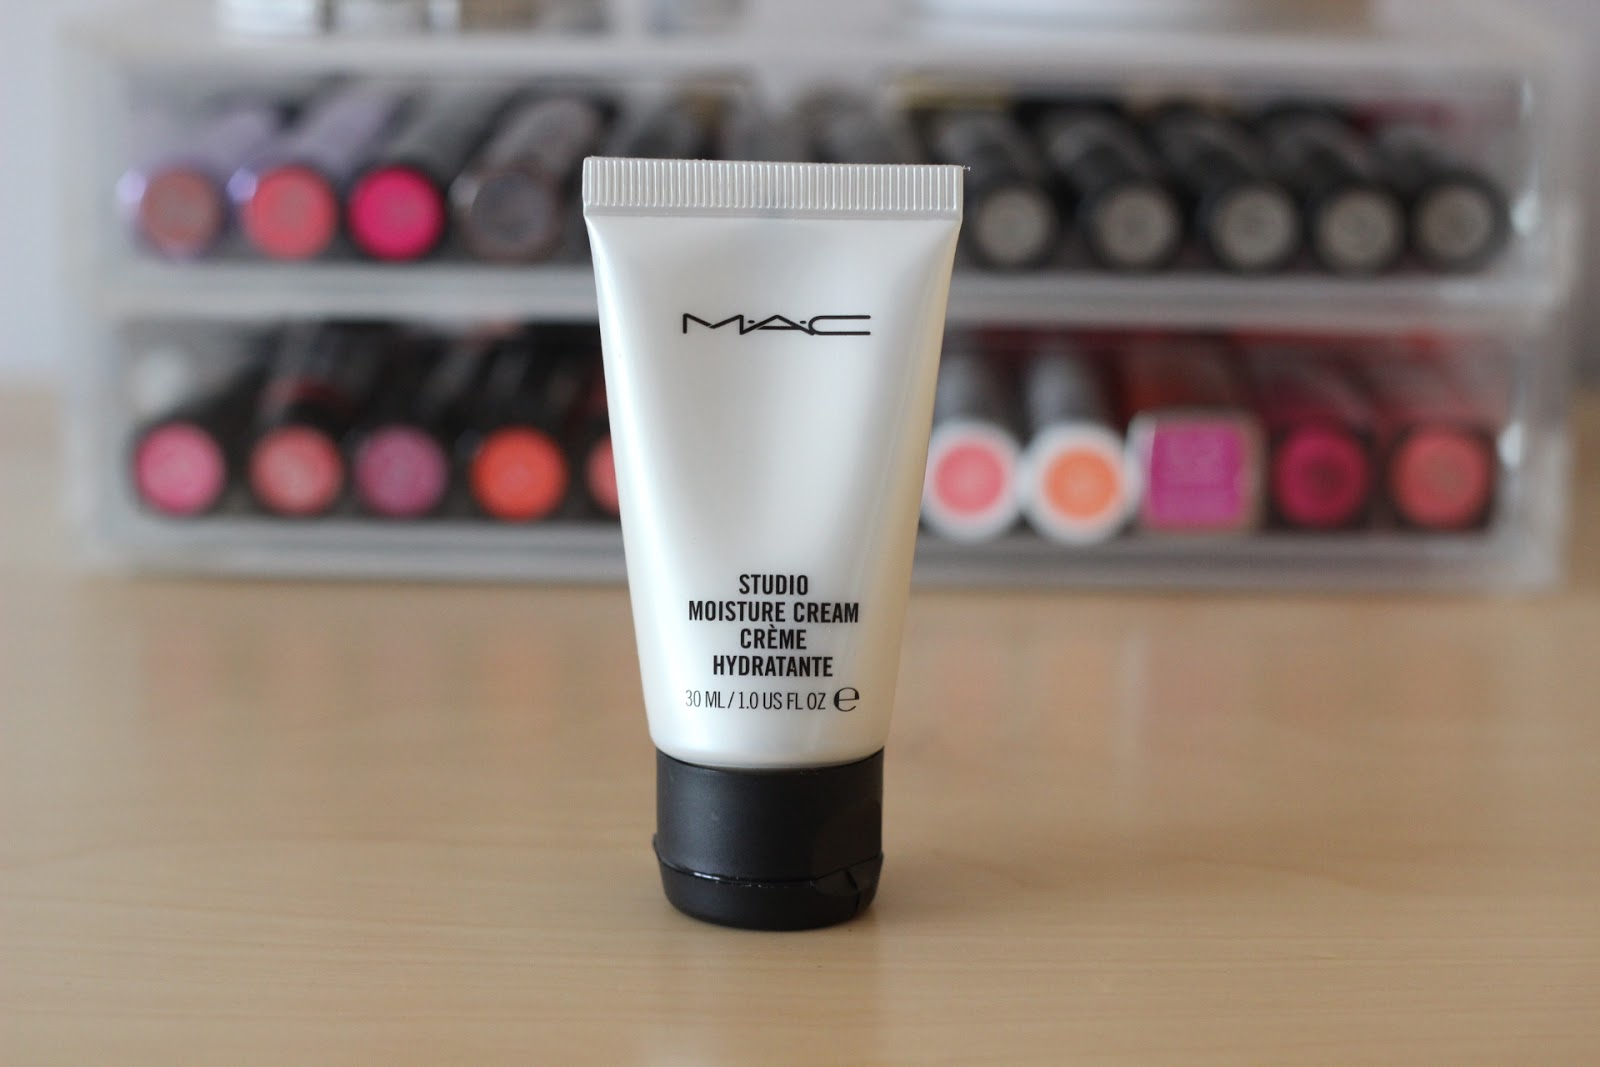 Mac Studio Moisture Cream Review